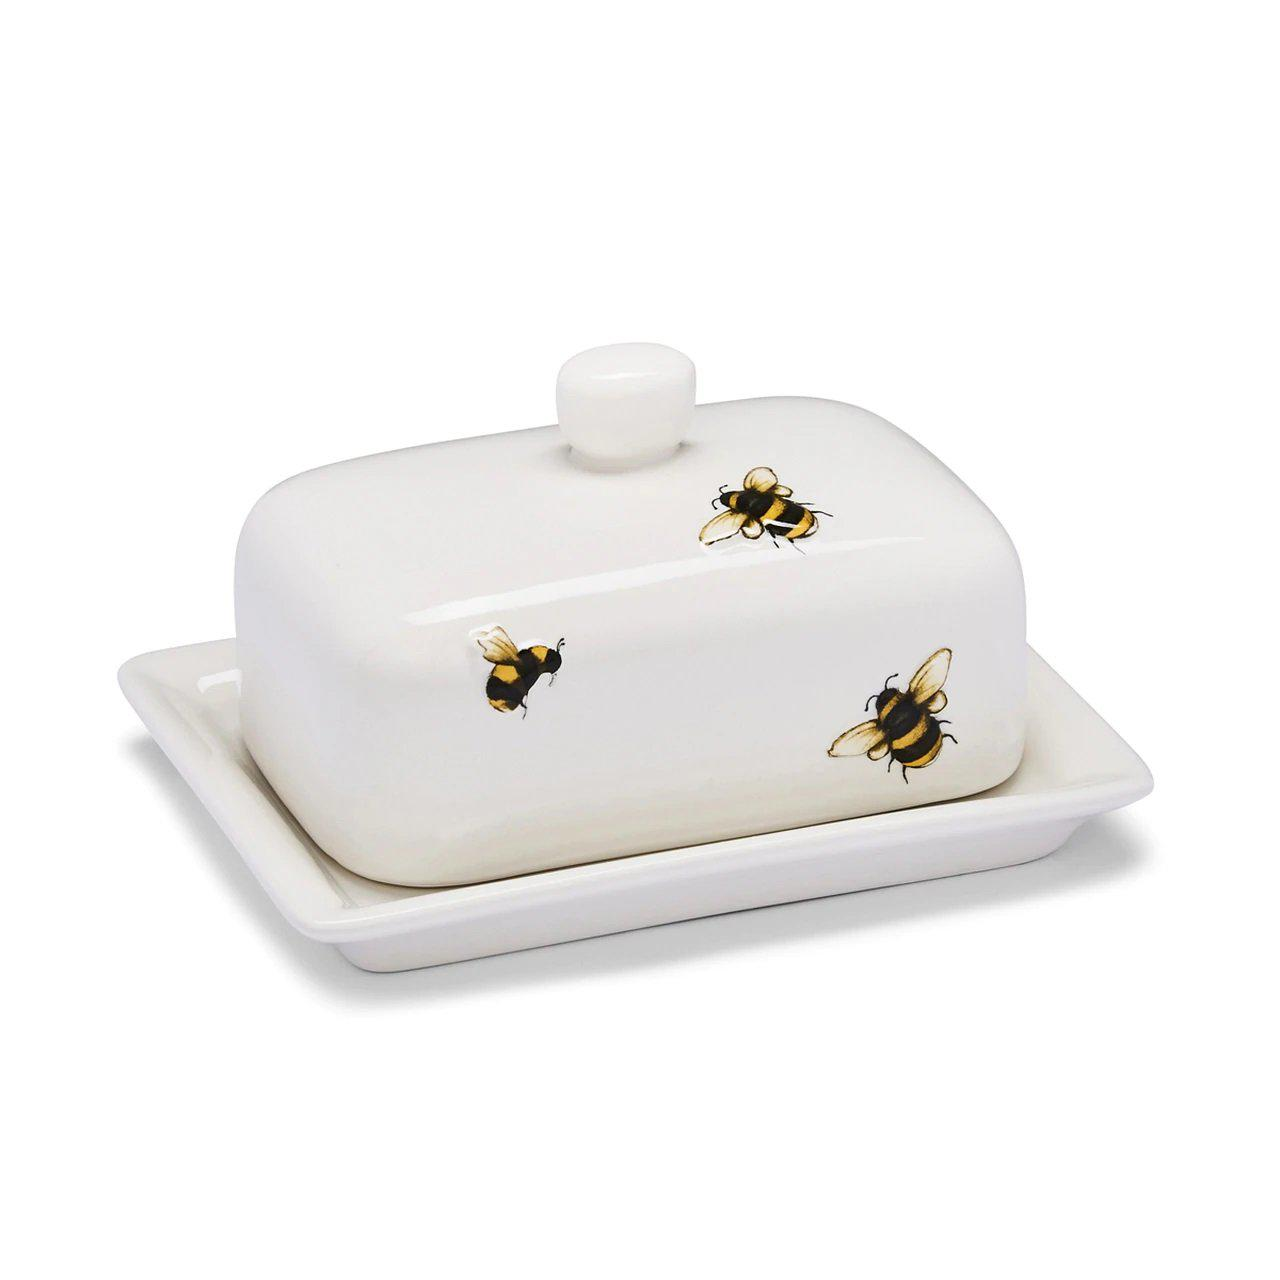 Bumble Bee Ceramic Butter Dish-Homeware-City Look-Thursford Enterprises Ltd.